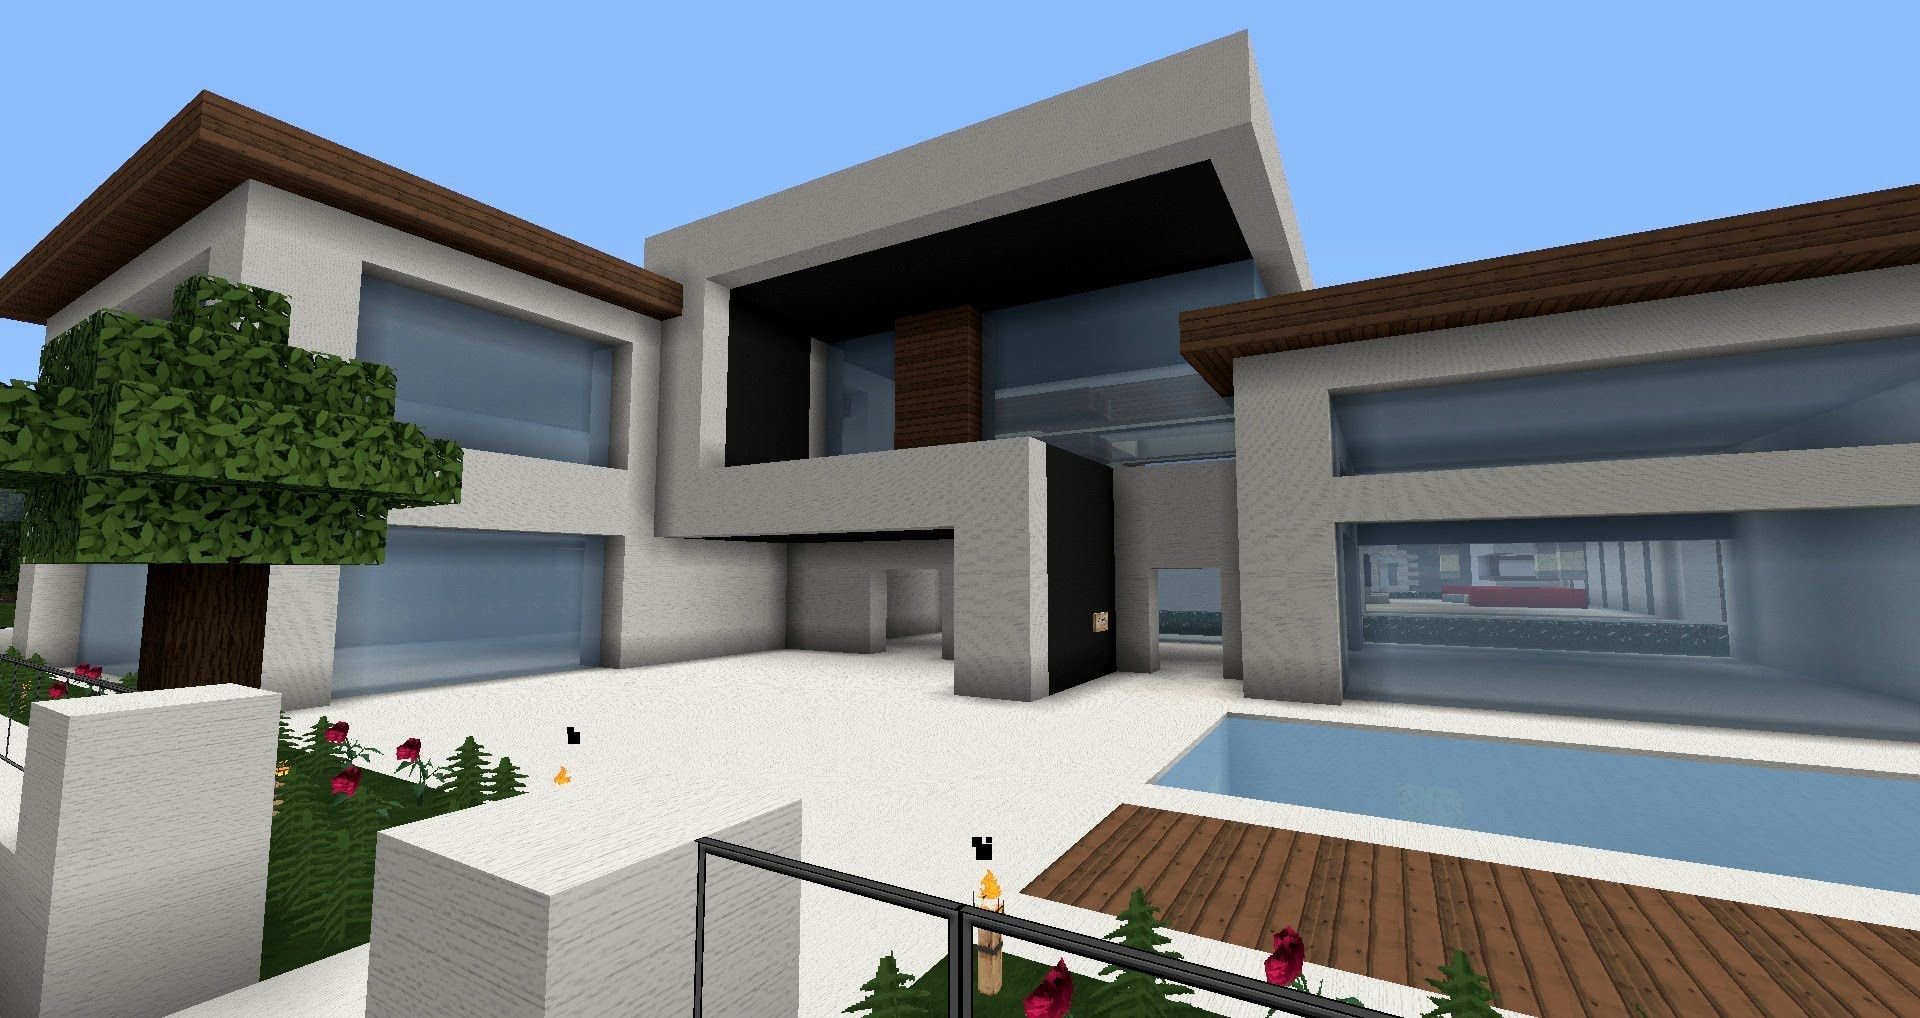 Really nice modern houses - Flows Hd Texture Pack For Minecraft A Really Nice Modern Hd Pack I Use It For All Of My Modern Builds